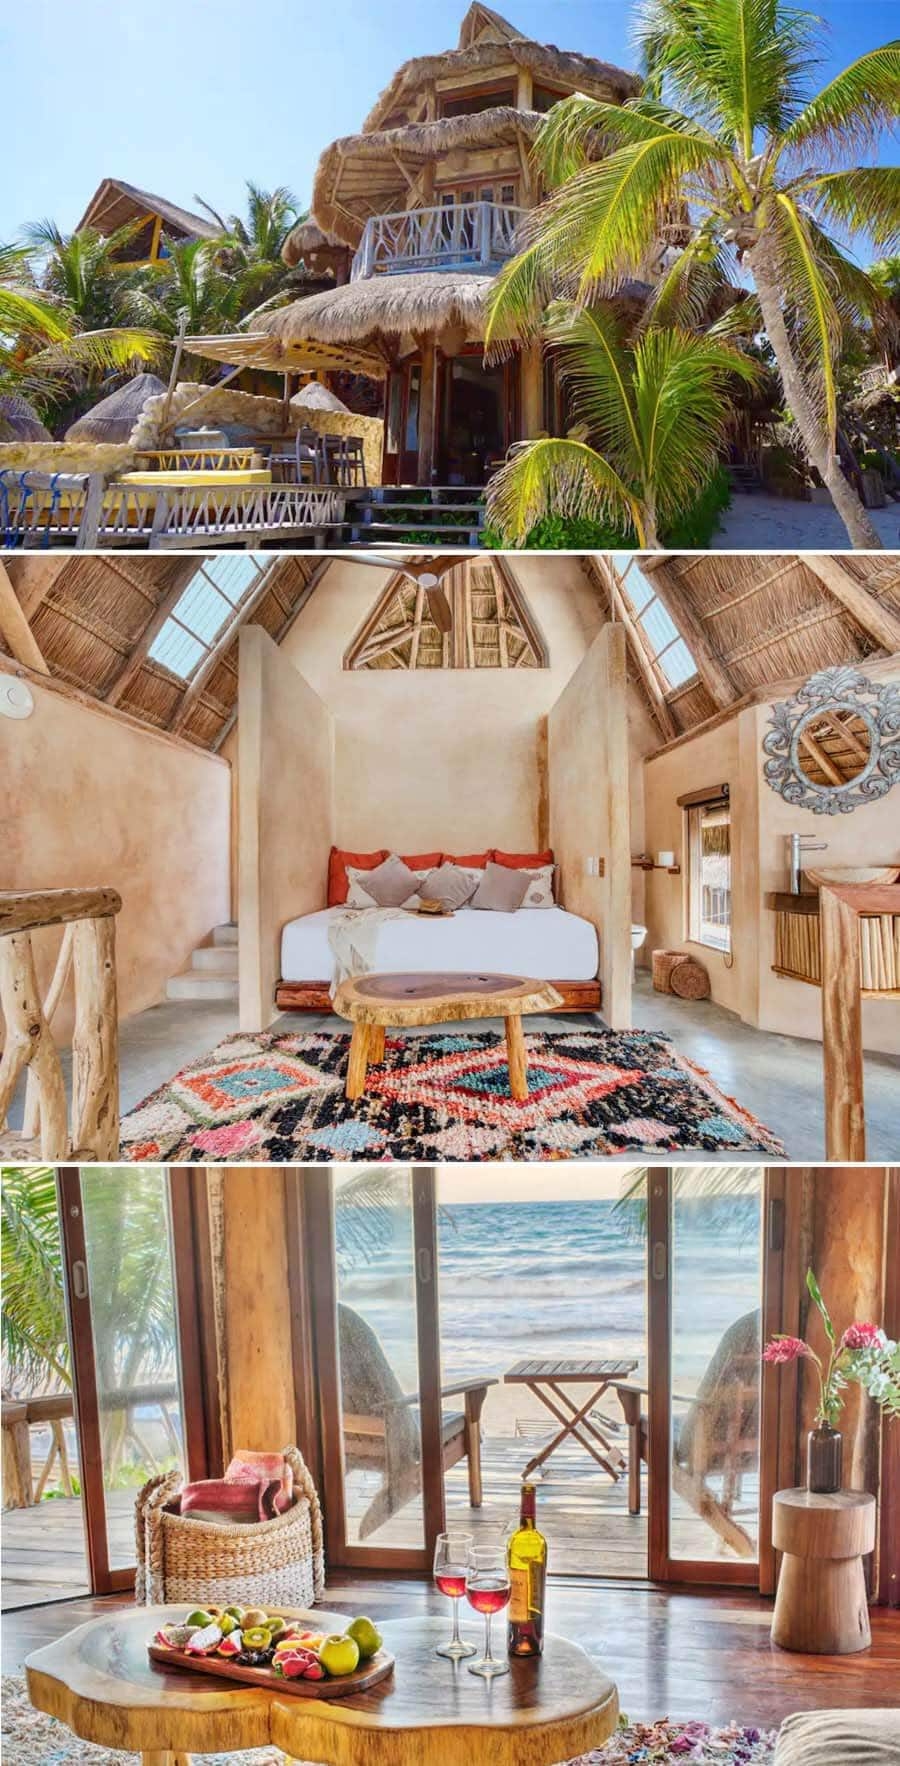 Best Airbnbs in Tulum - Mexican style villa